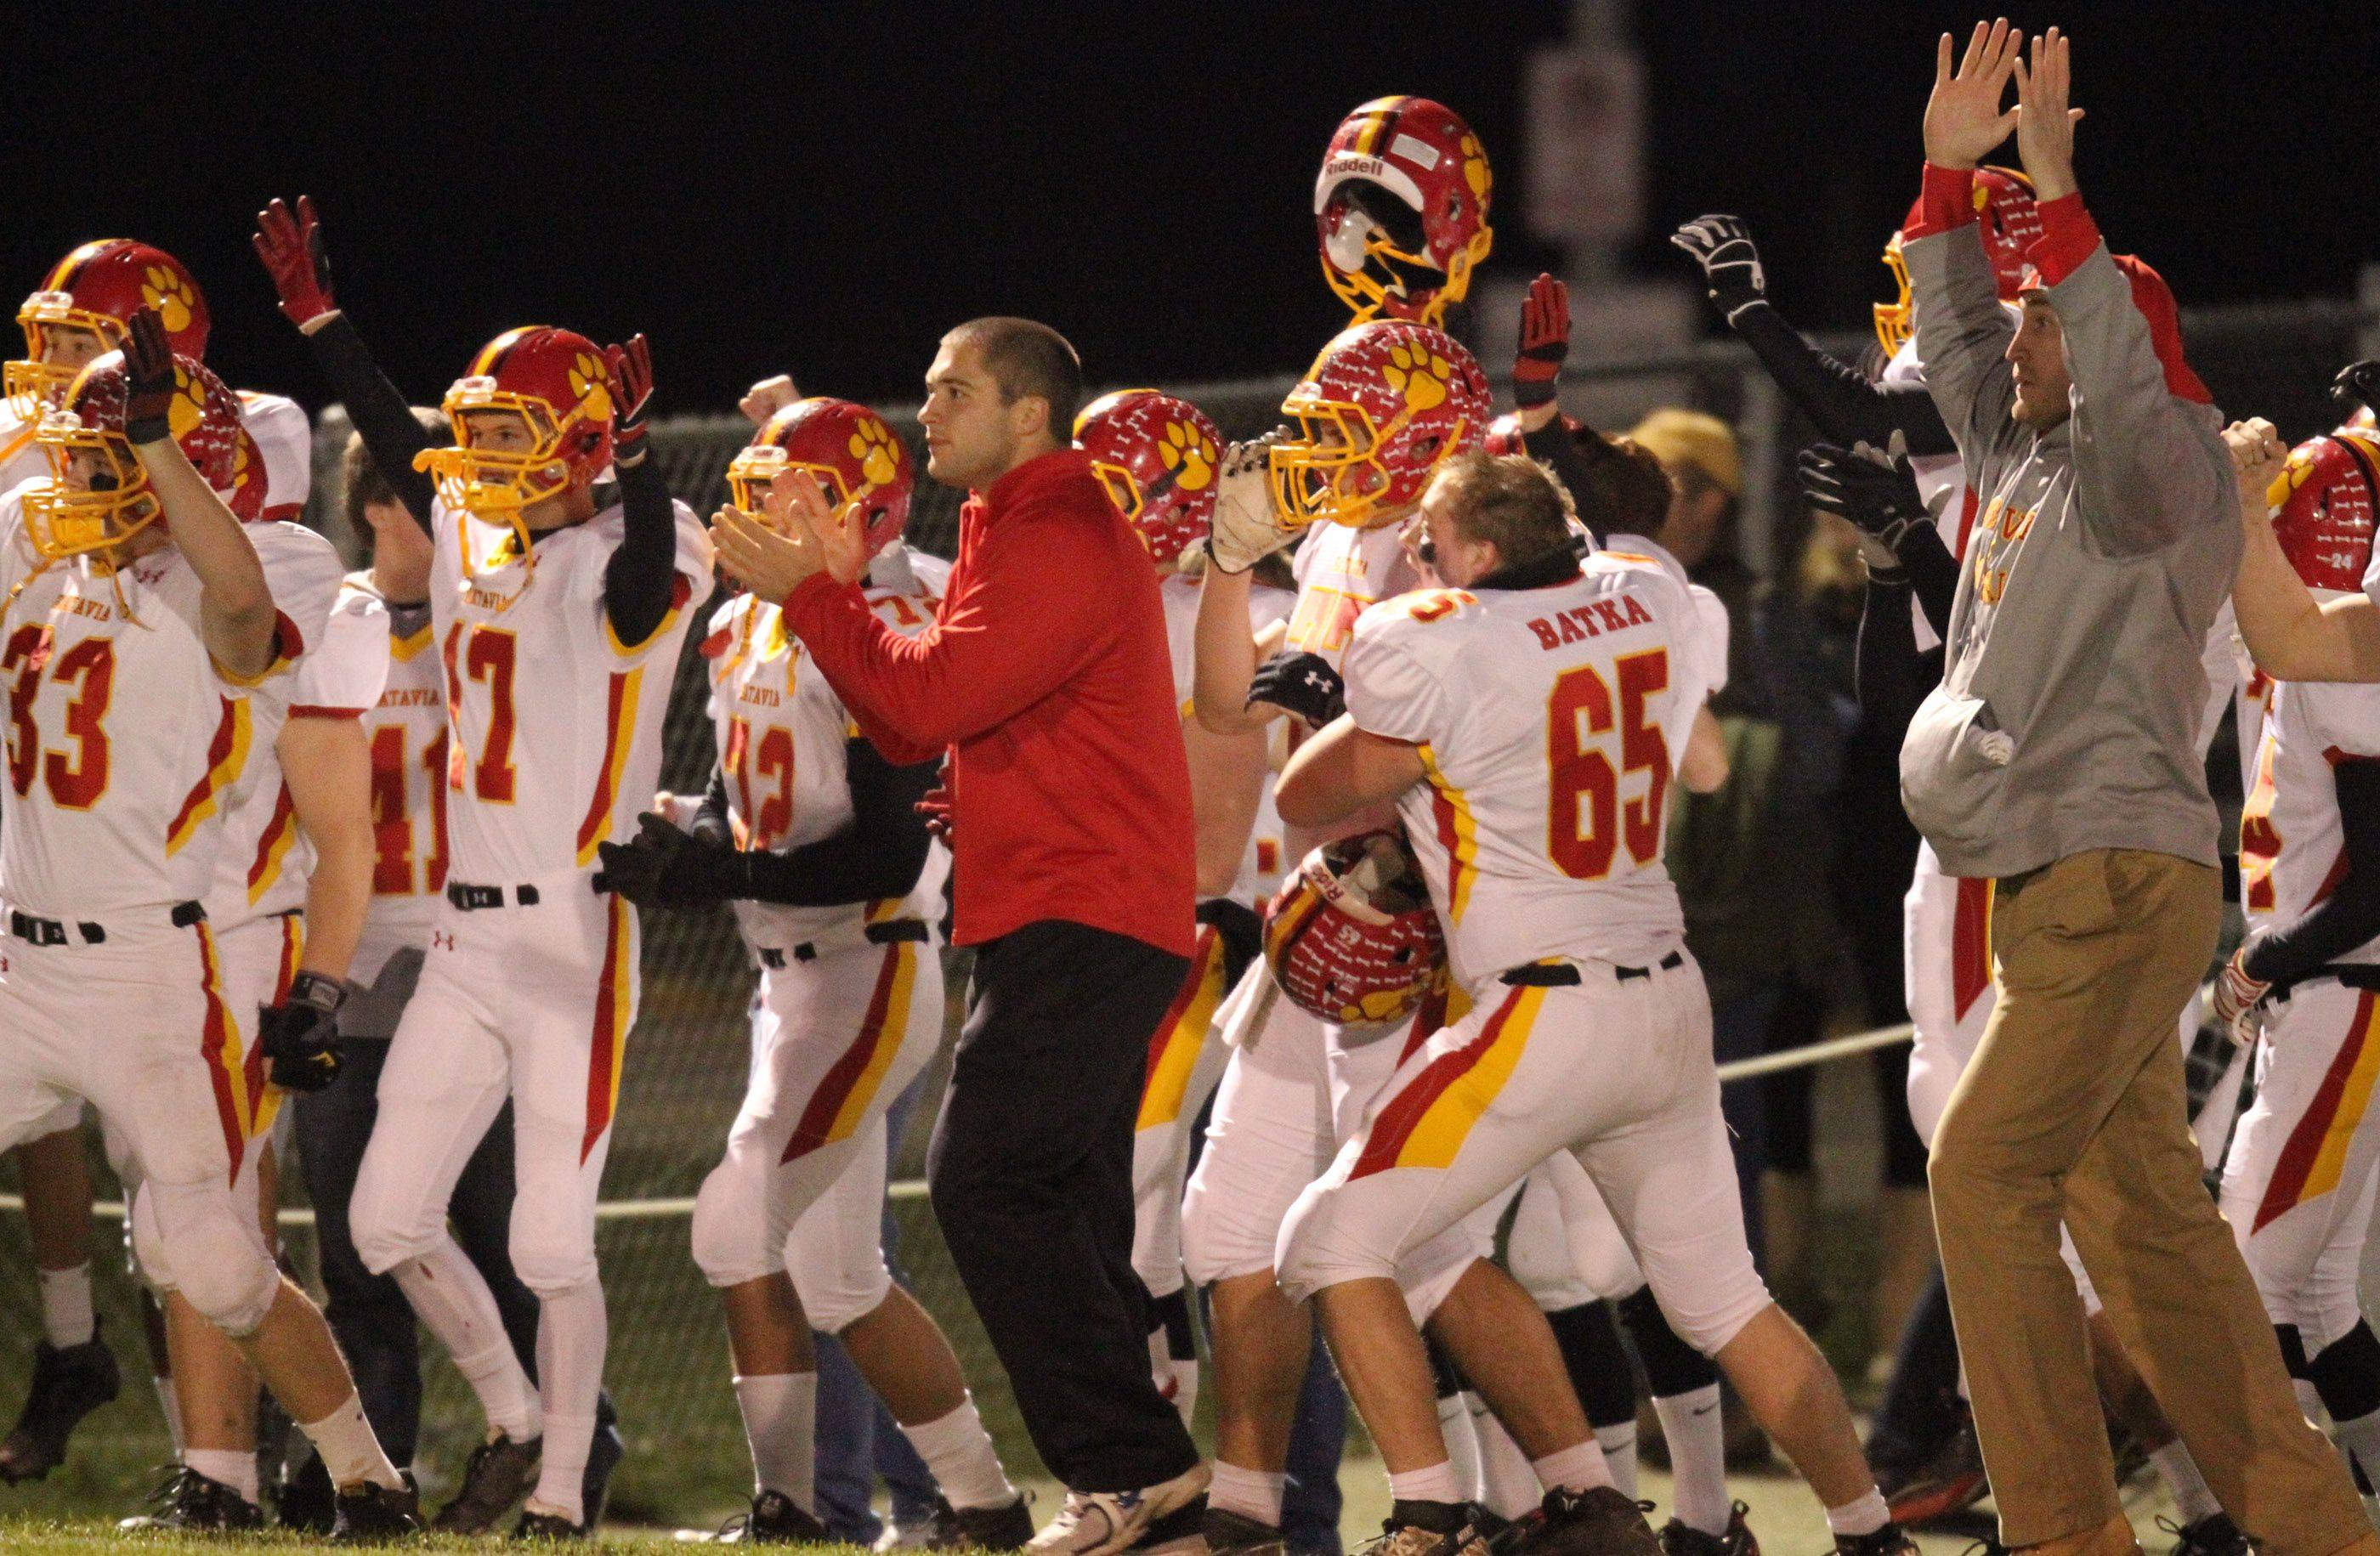 Batavia sideline celebrates a touchdown early in the first quarter at Lakes on Saturday, November 12th.